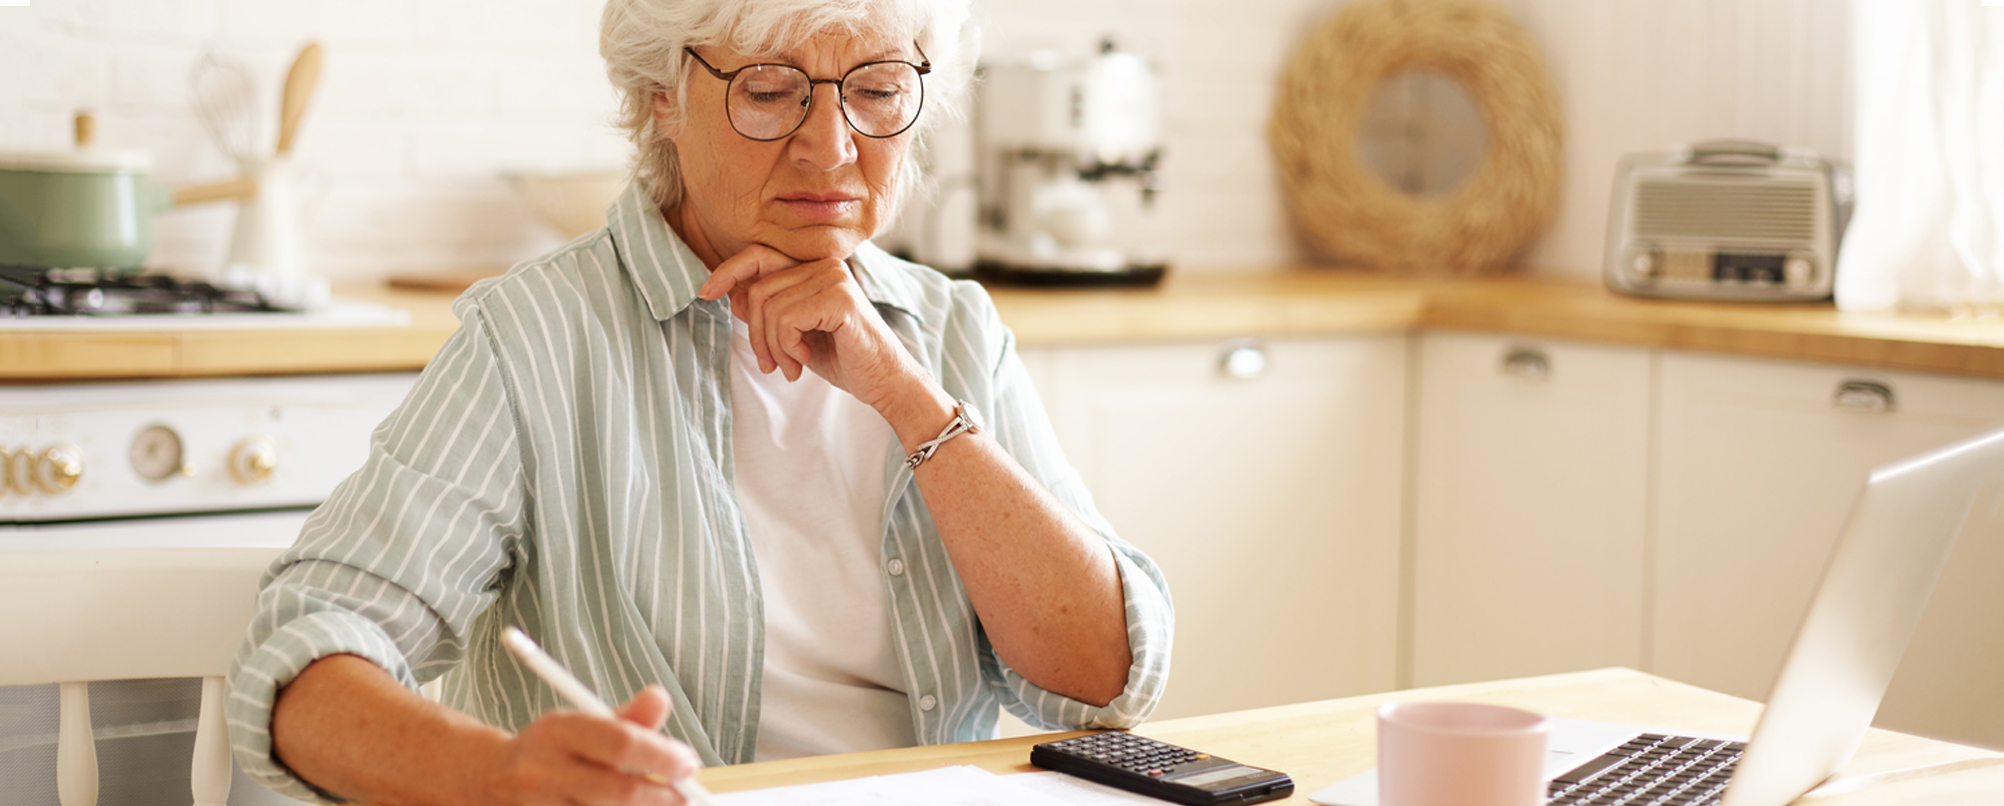 Stressed senior woman calculates finances in kitchen with laptop